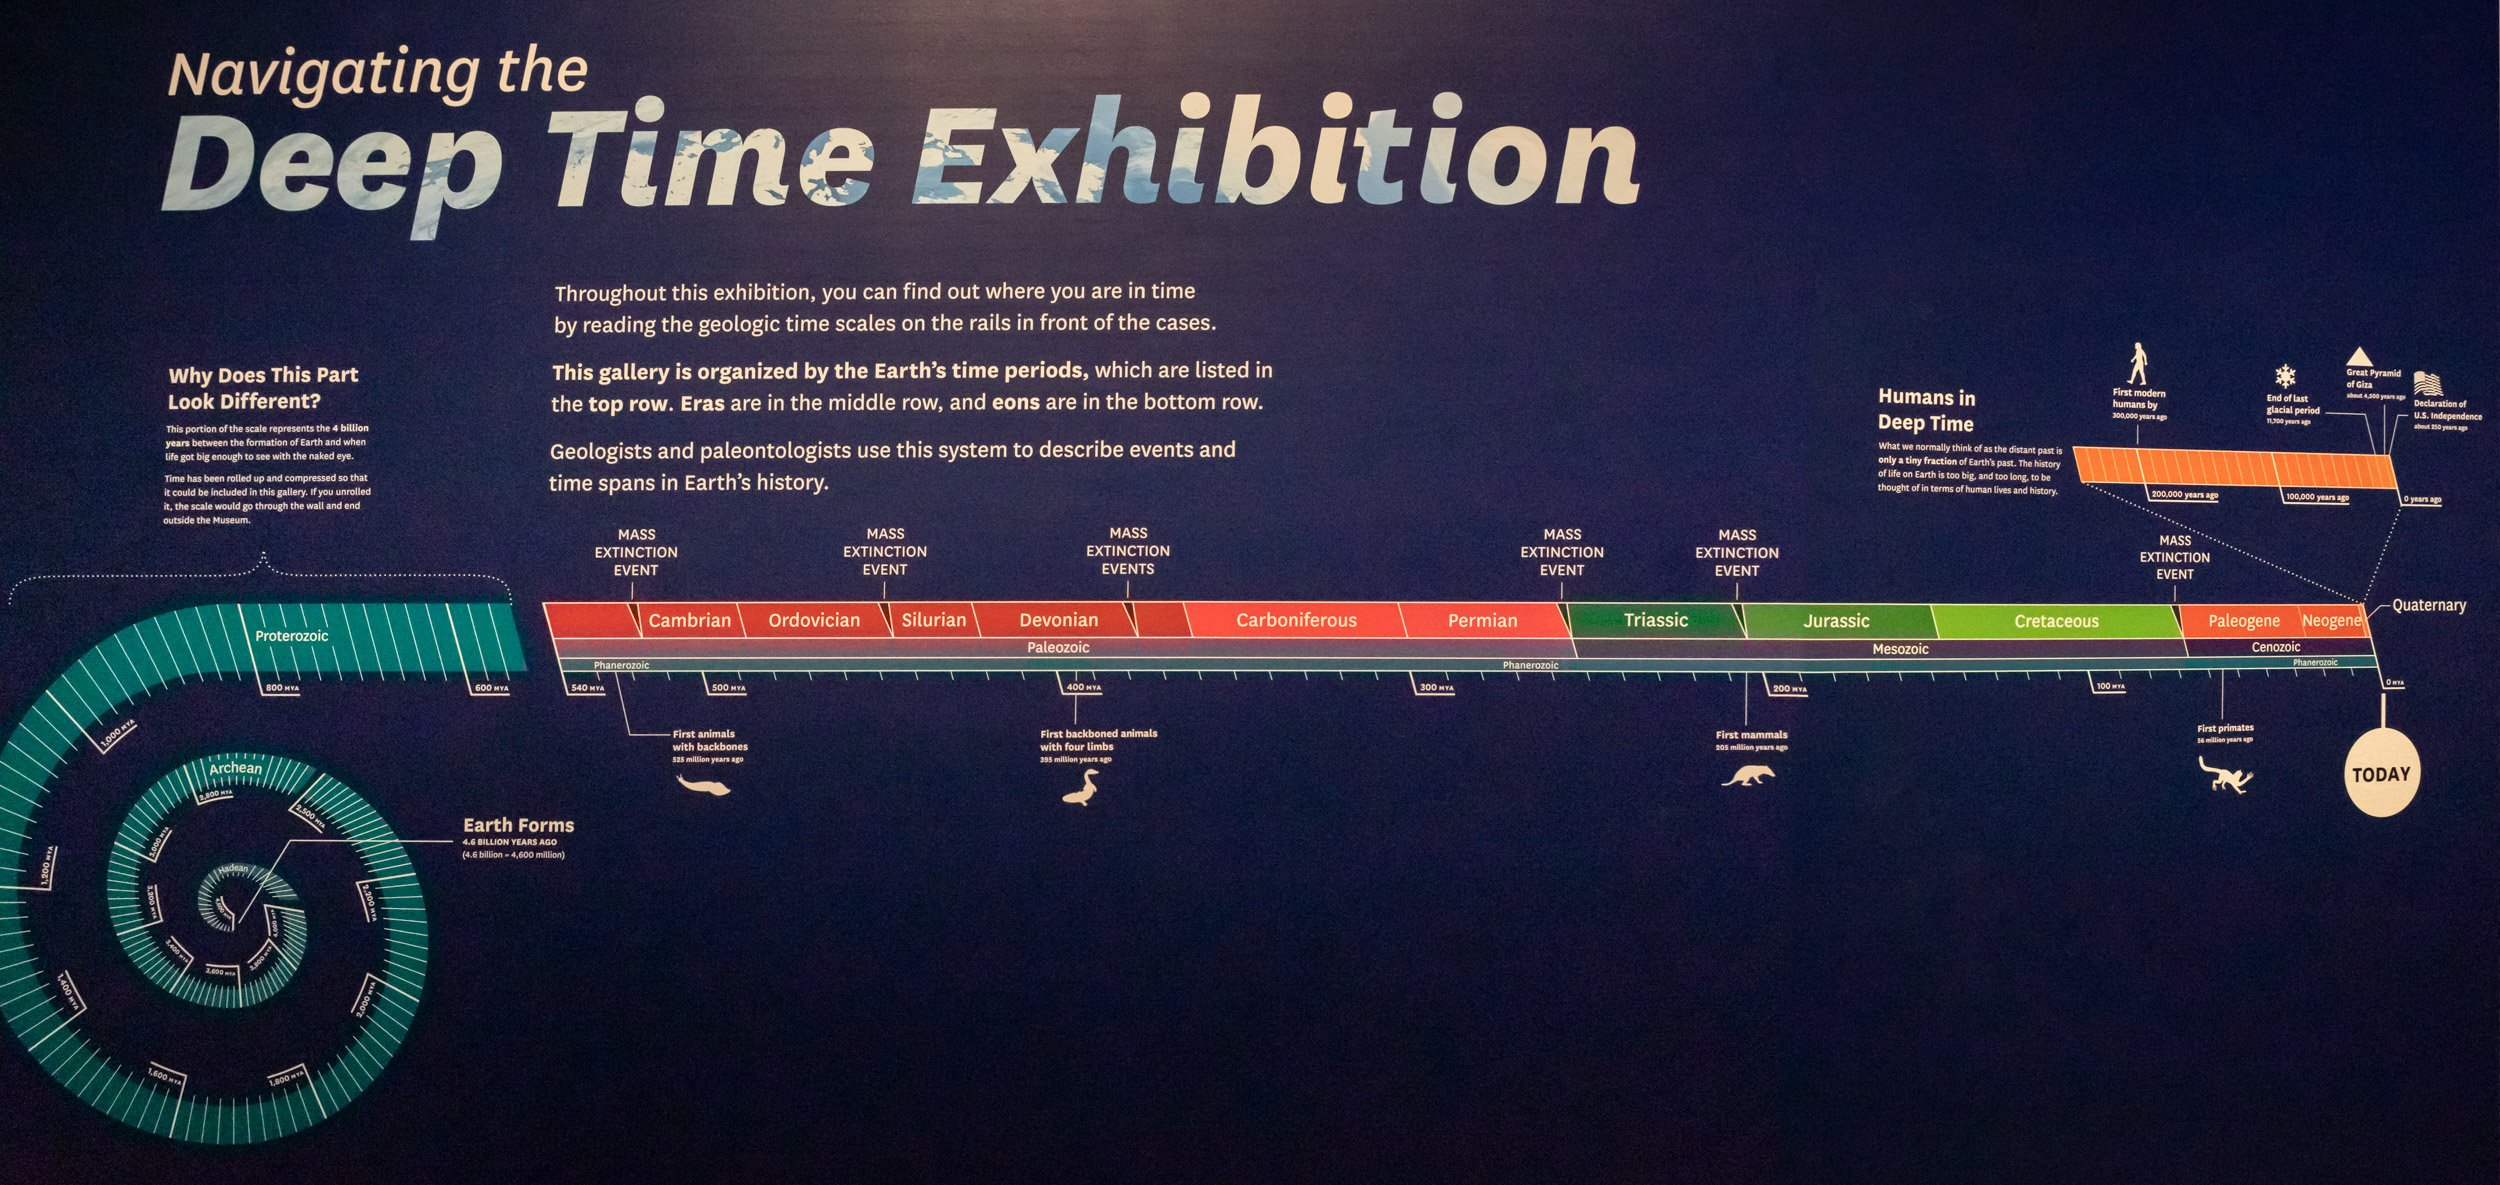 Deep Time Exhibition Sign